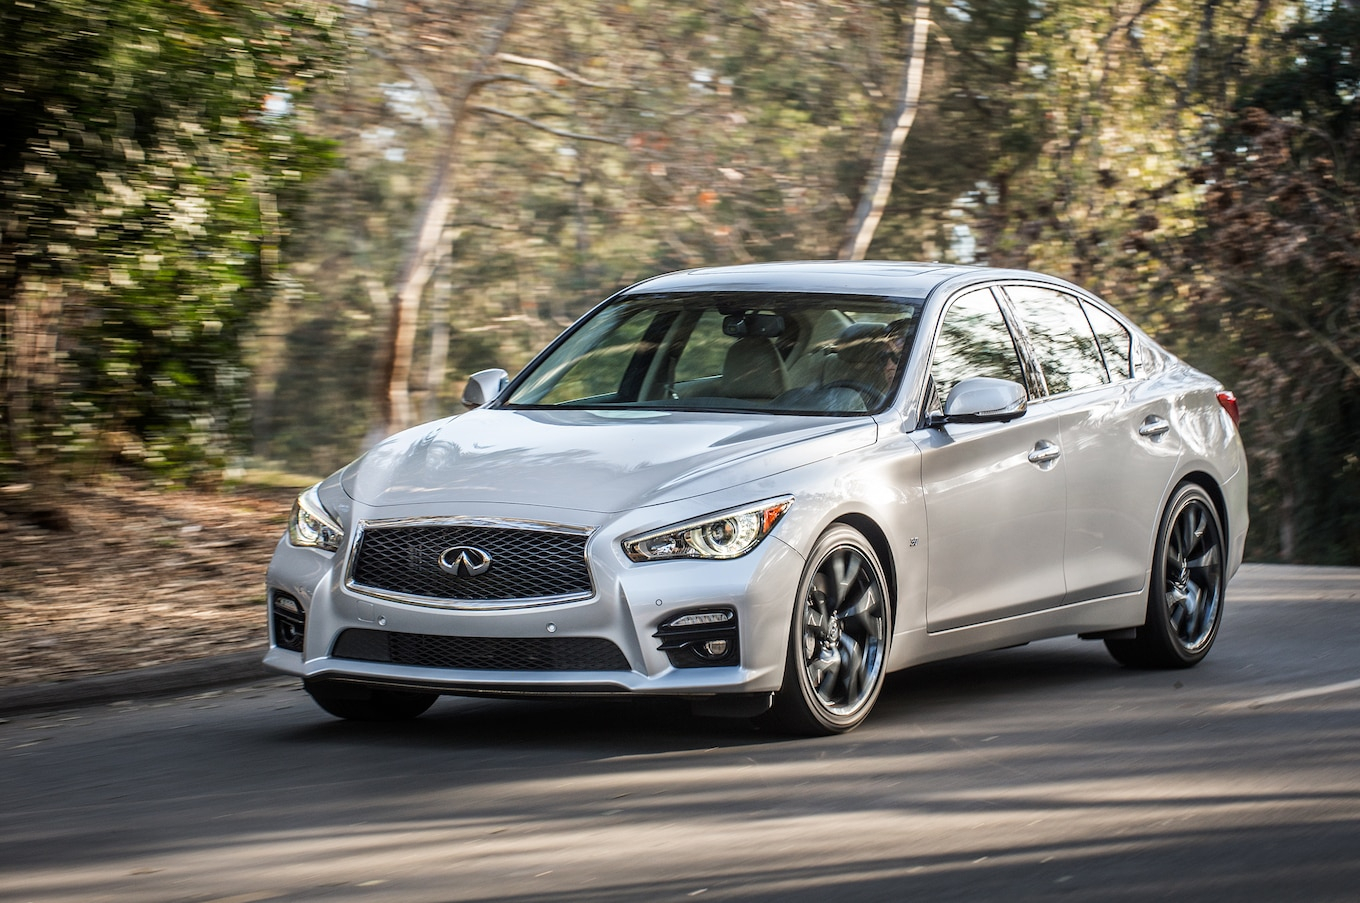 2015 Infiniti Q50 Reviews and Rating | Motor Trend